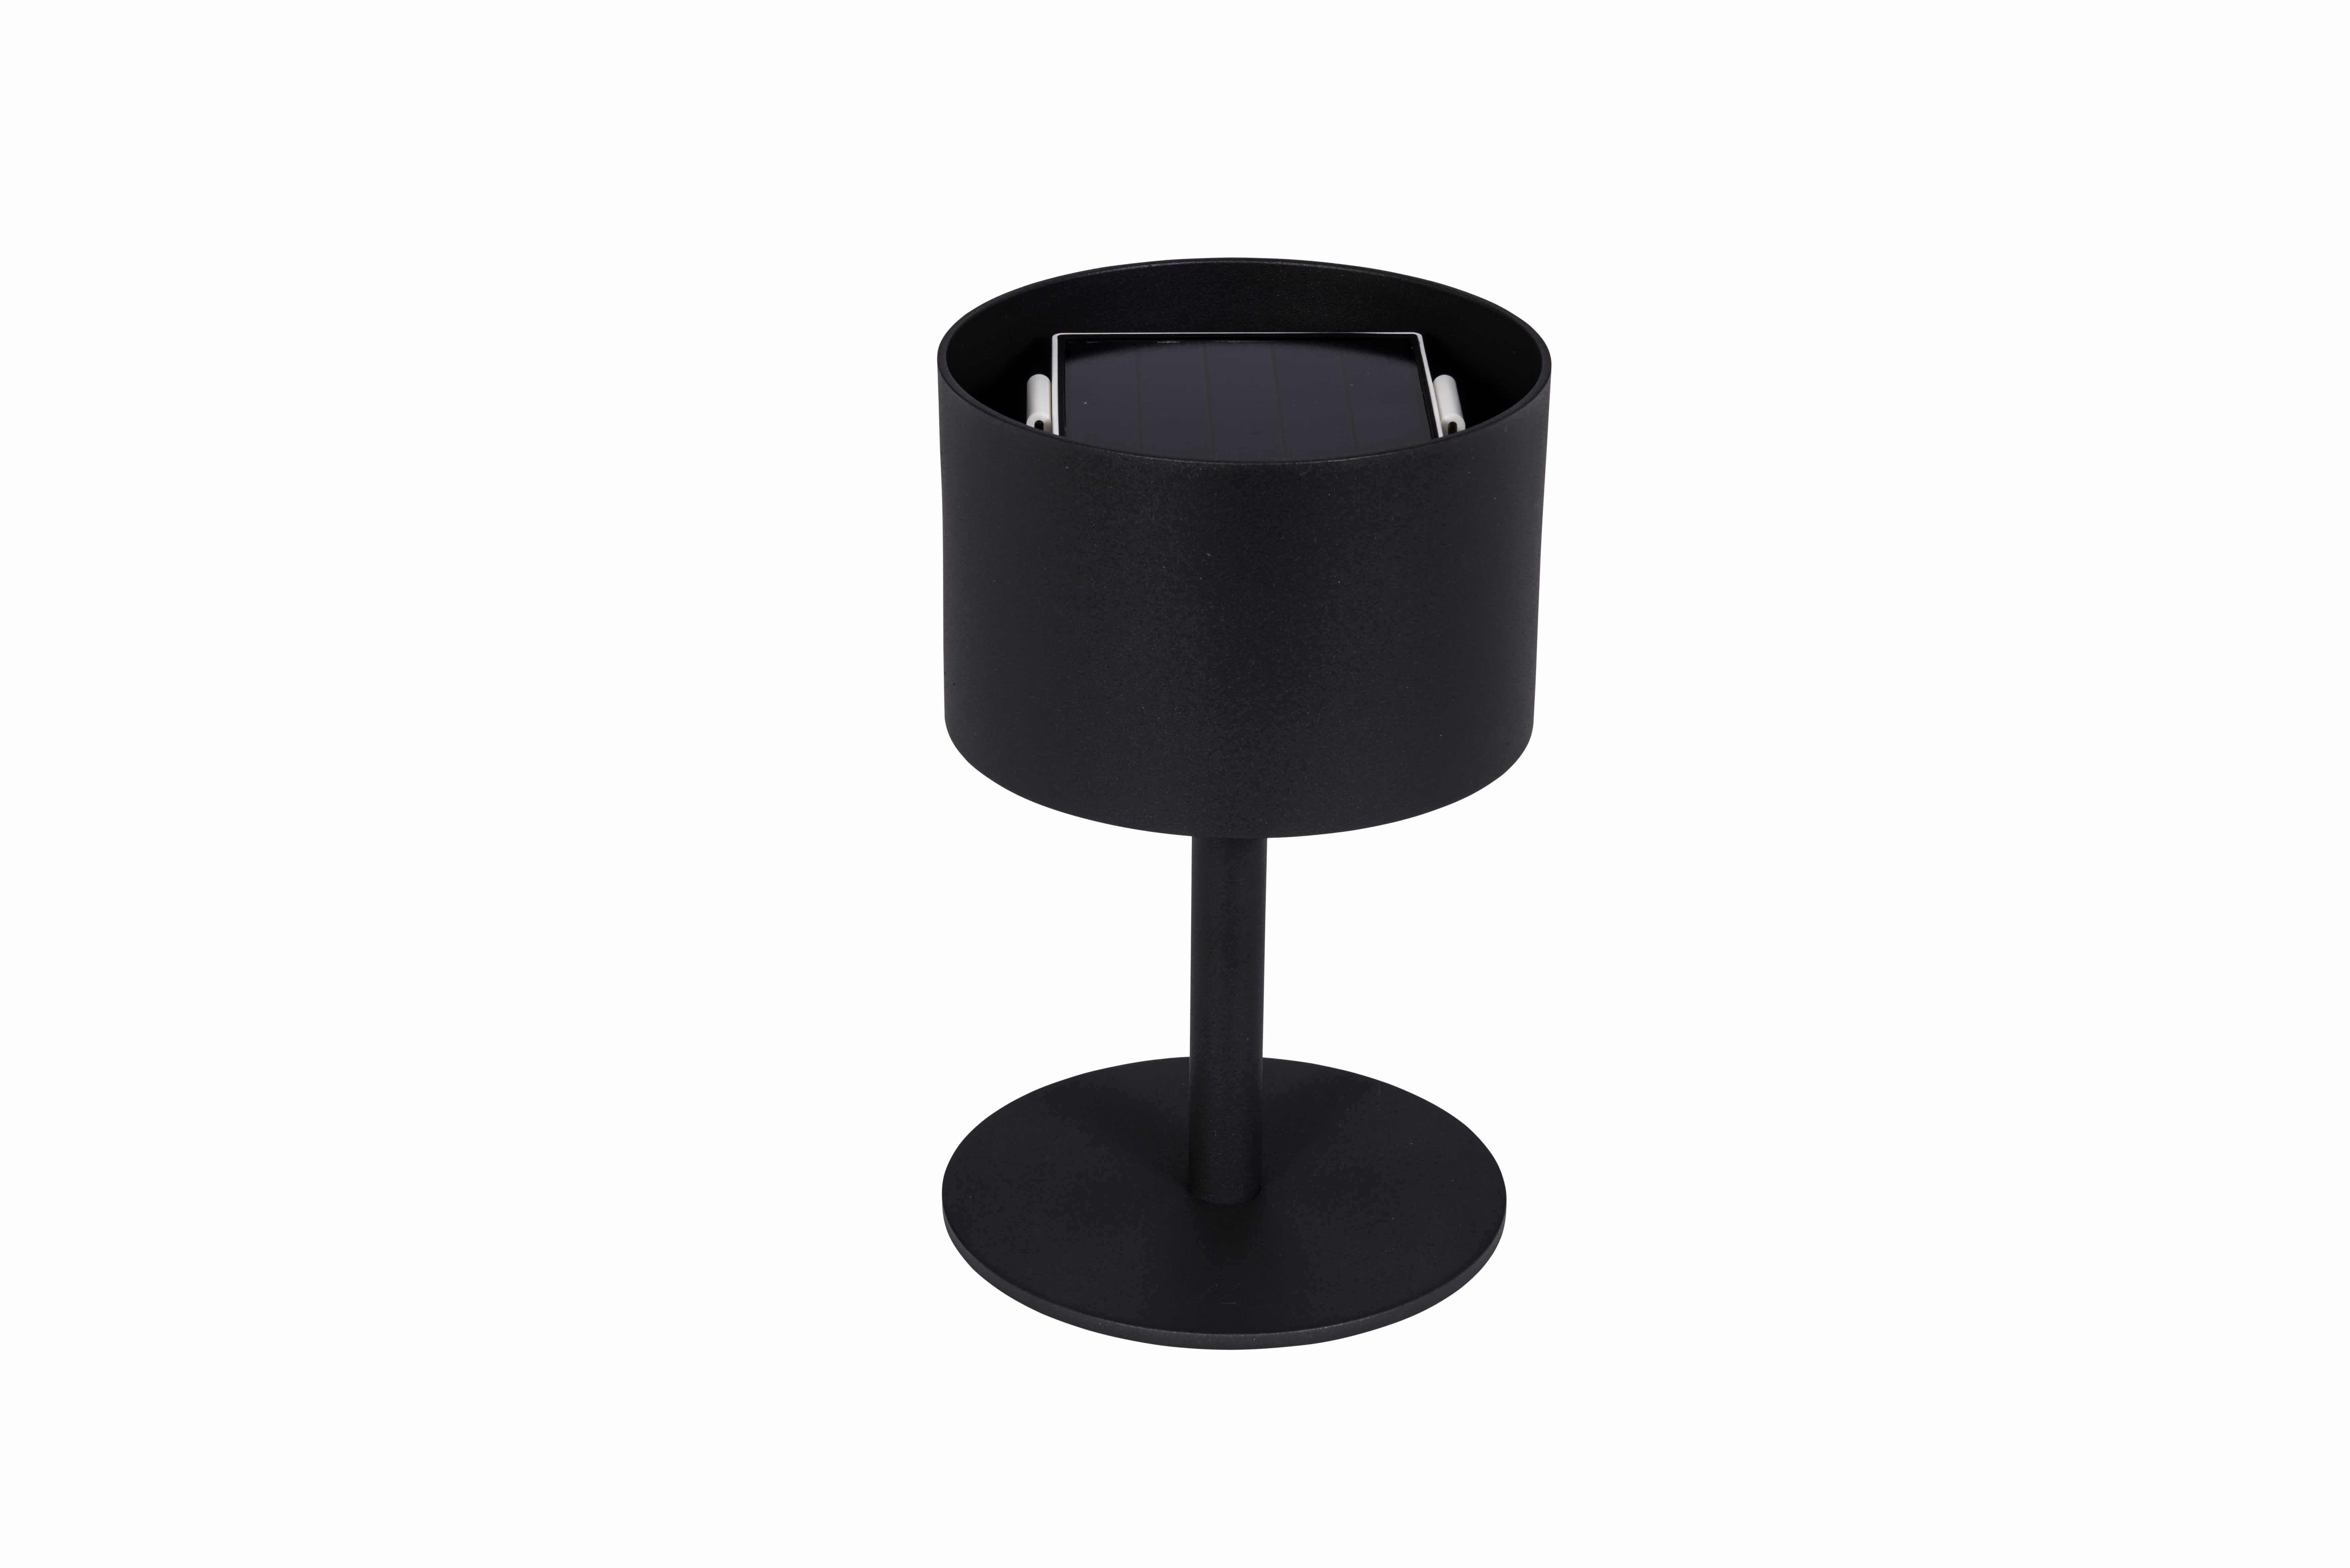 La Lampe Pose | This Style Light Is Available In Charcoal And White, In  Both Round And Square Shades. View The Full Outdoor Lighting Collection Of  La Lampe ...